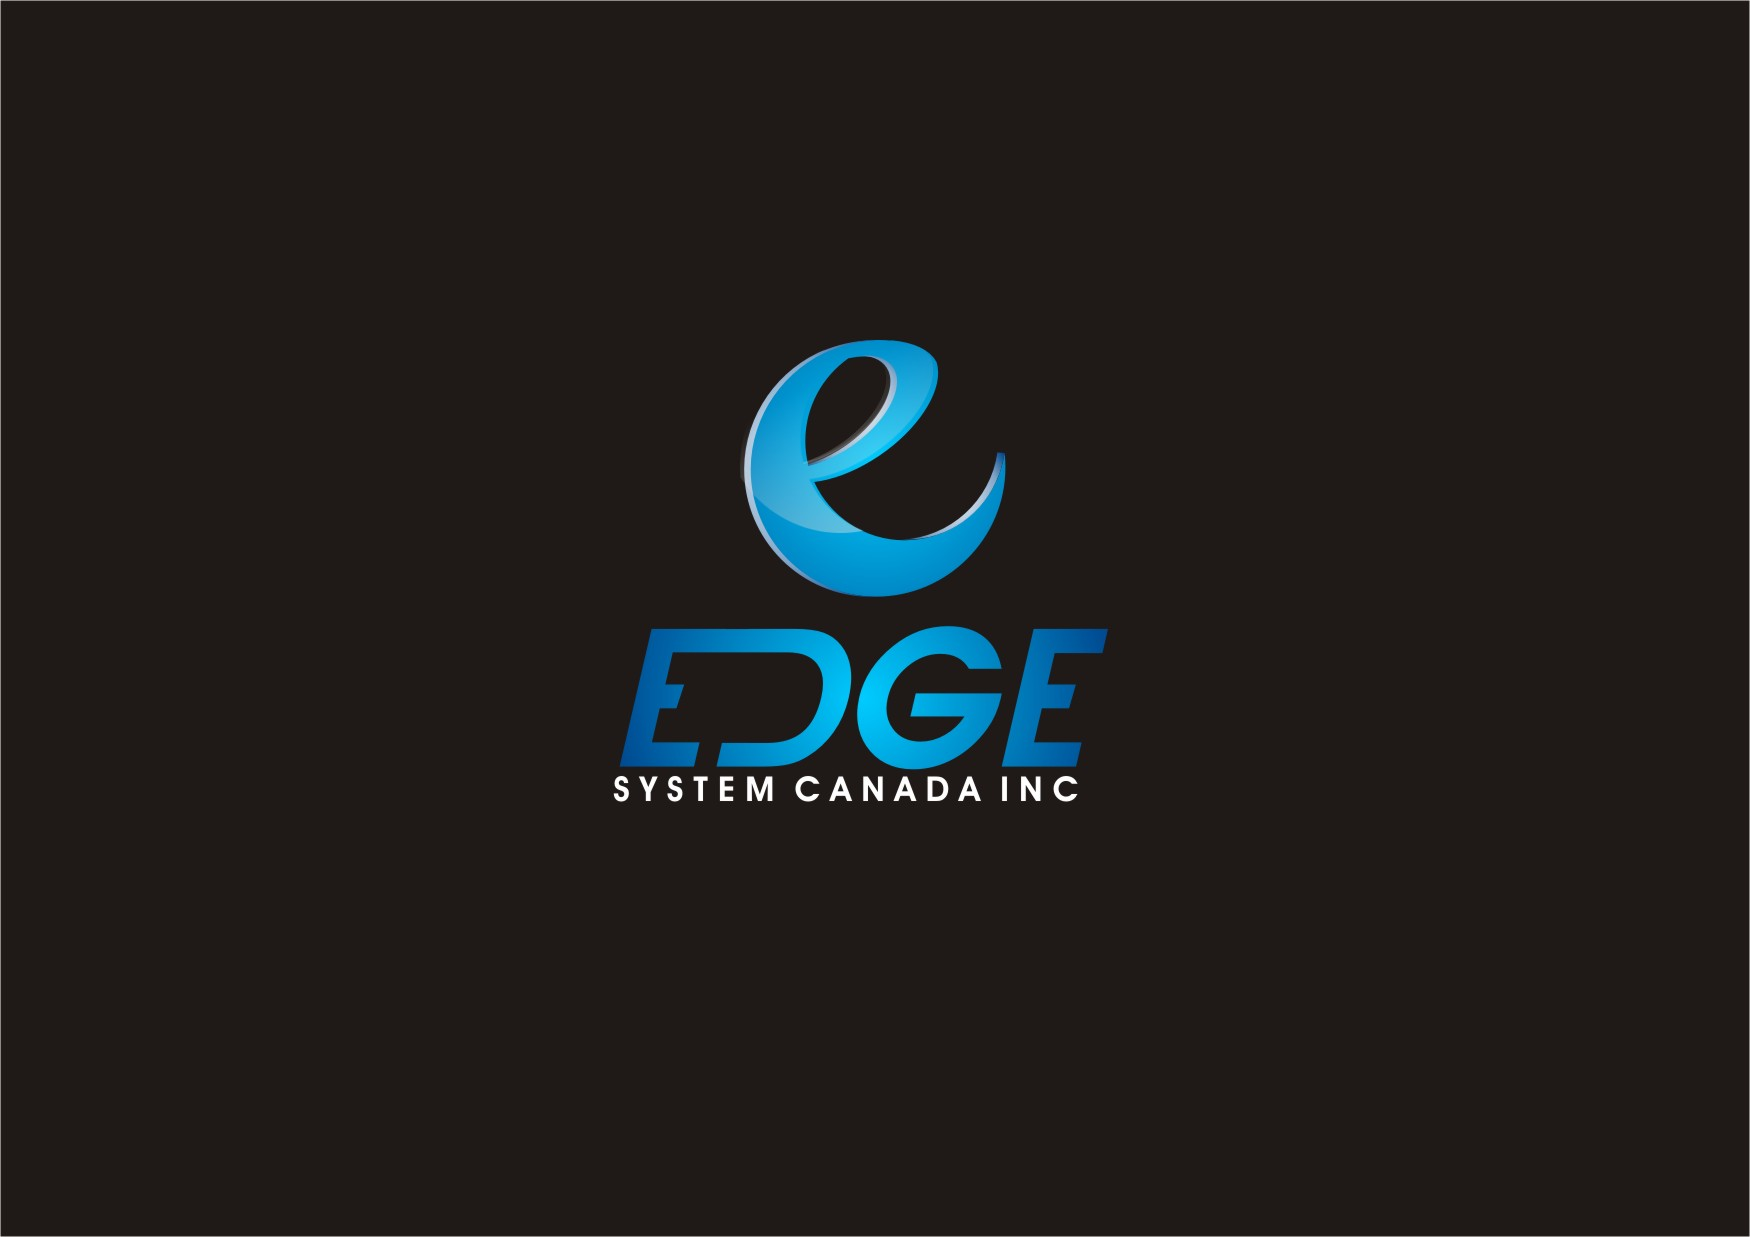 Logo Design by yanxsant - Entry No. 95 in the Logo Design Contest New Logo Design for Edge Systems Canada Inc.